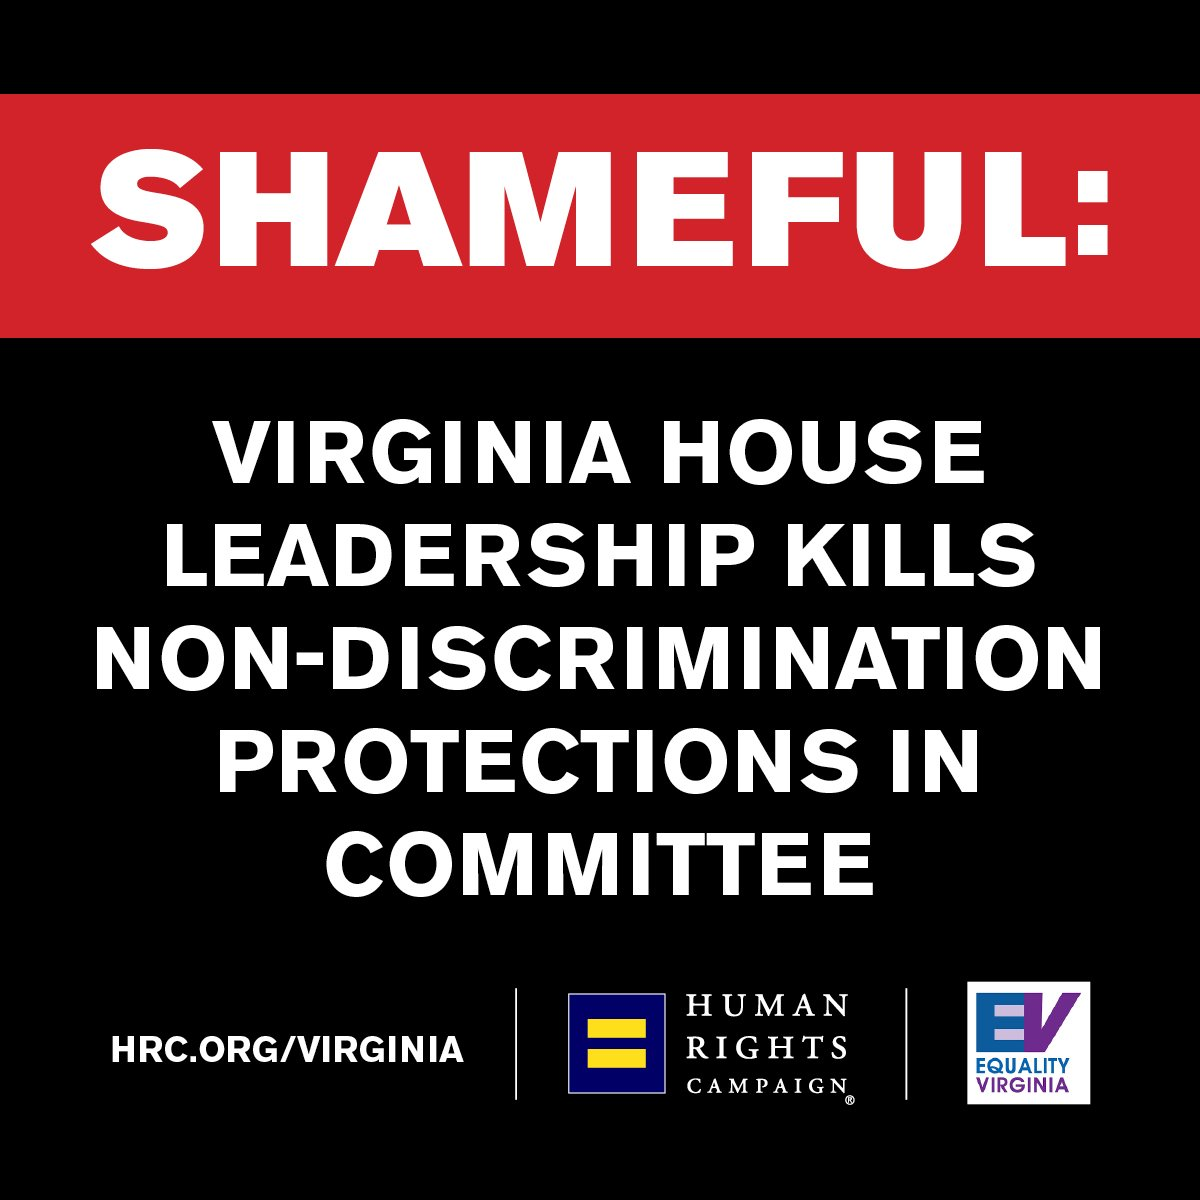 BREAKING: After passing the Senate in bipartisan fashion, @SpeakerCox and House leadership refuse to bring non-discrimination protection bills up for a committee vote. https://www.hrc.org/blog/shameful-va-house-leadership-kills-non-discrim-protections-in-committee …